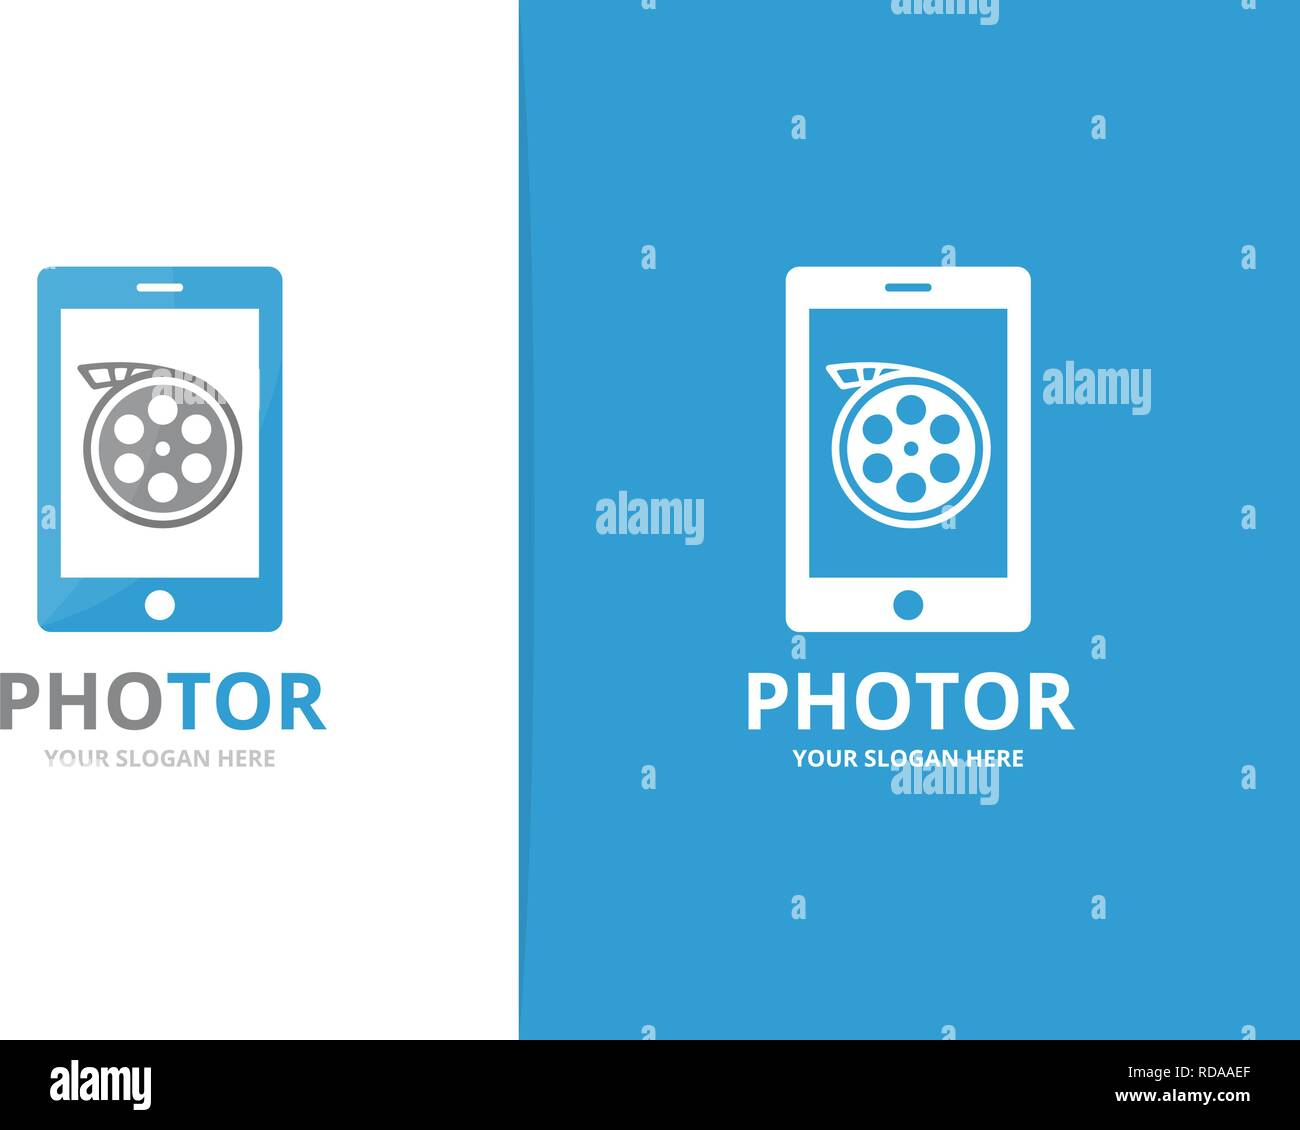 Vector movie and phone logo combination. Cinema and mobile symbol or icon. Unique film and device logotype design template. Stock Vector